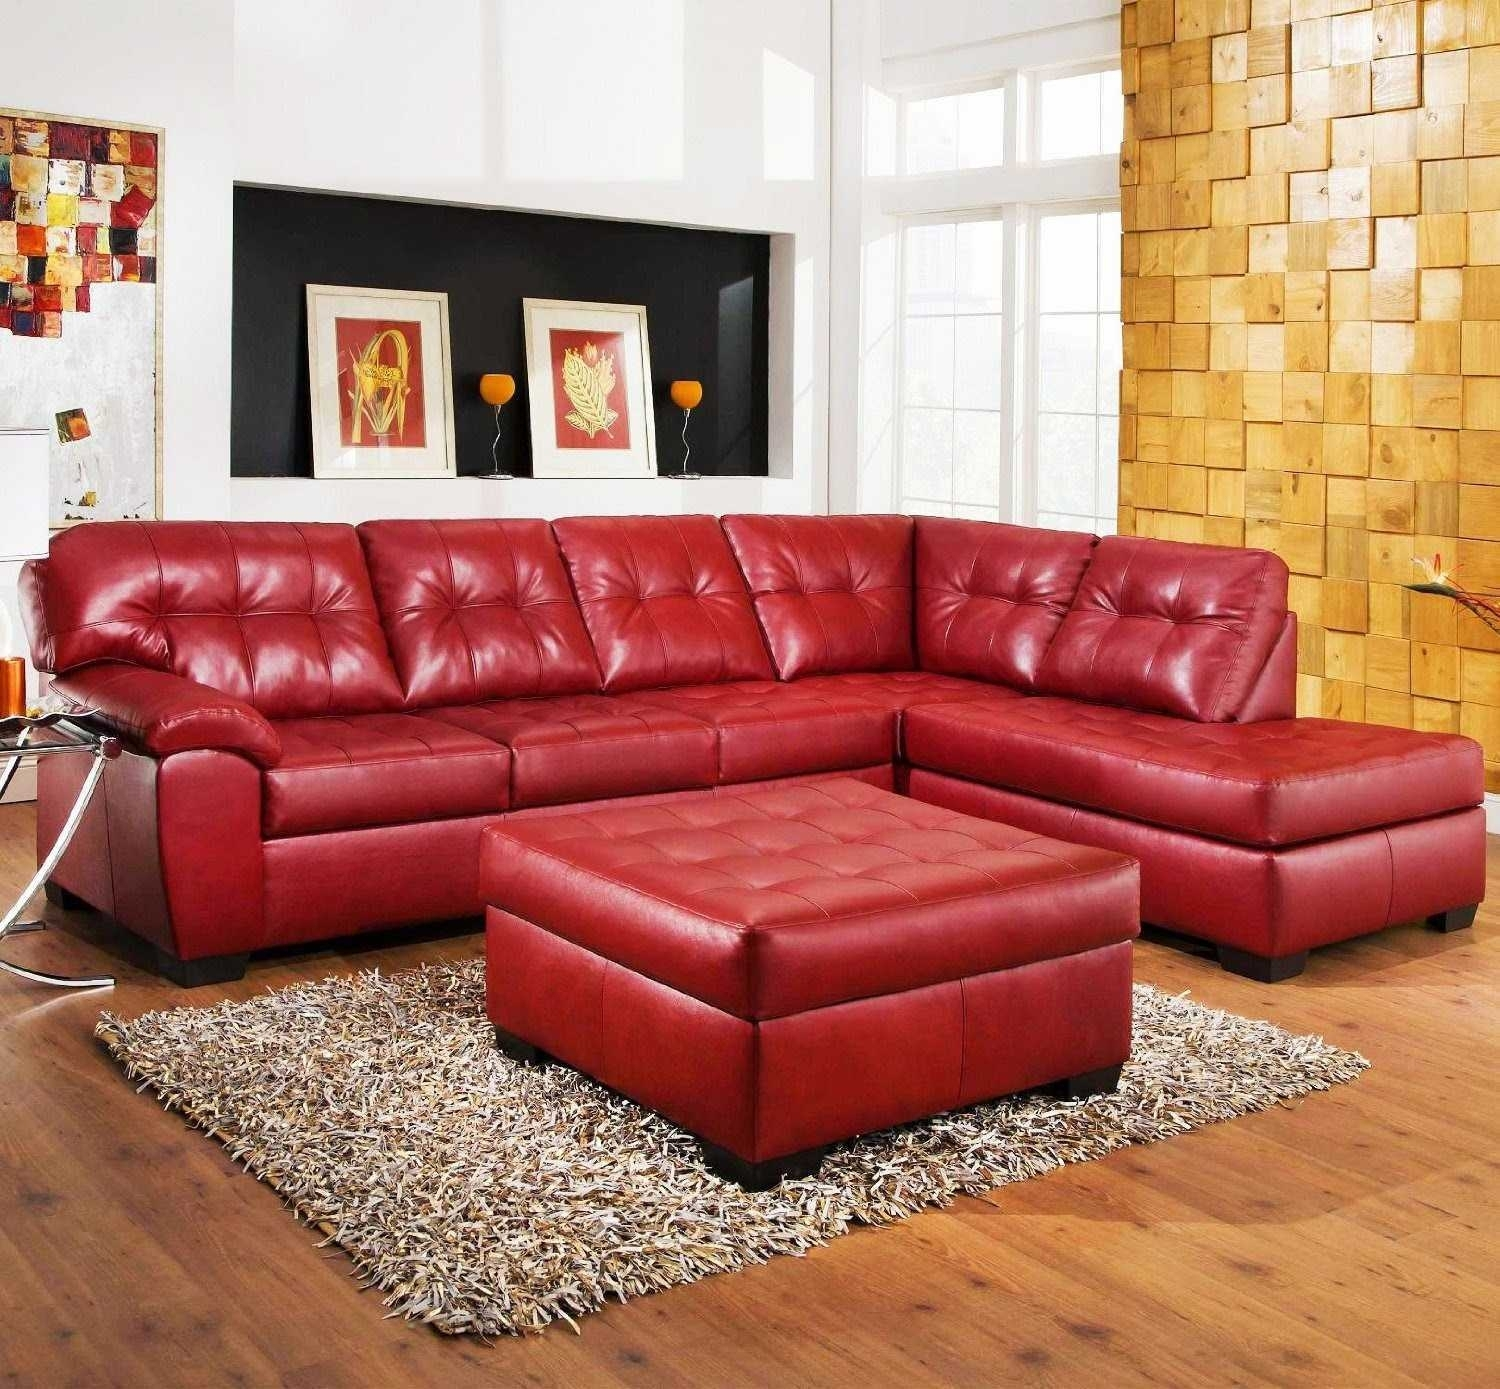 The Best Sectional Sofas Rooms Go And Ideas Pics Of To Trend Popular with Sectional Sofas At Rooms To Go (Image 13 of 15)